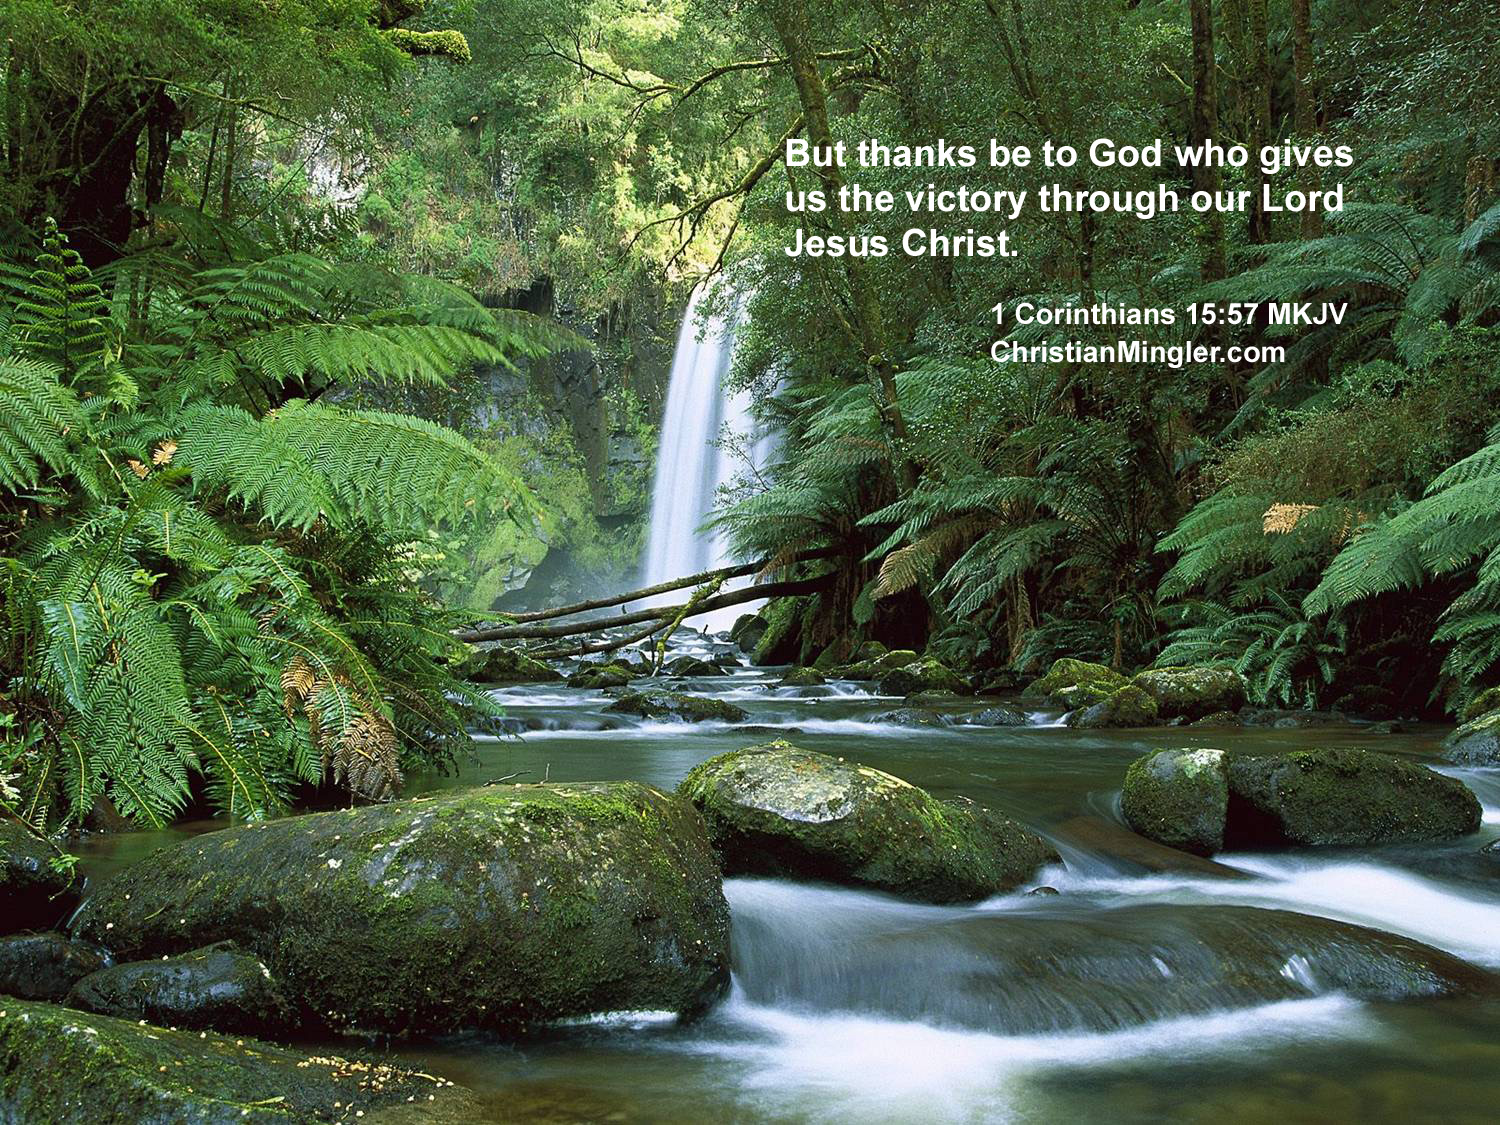 be to God! He gives us the victory through our Lord Jesus Christ